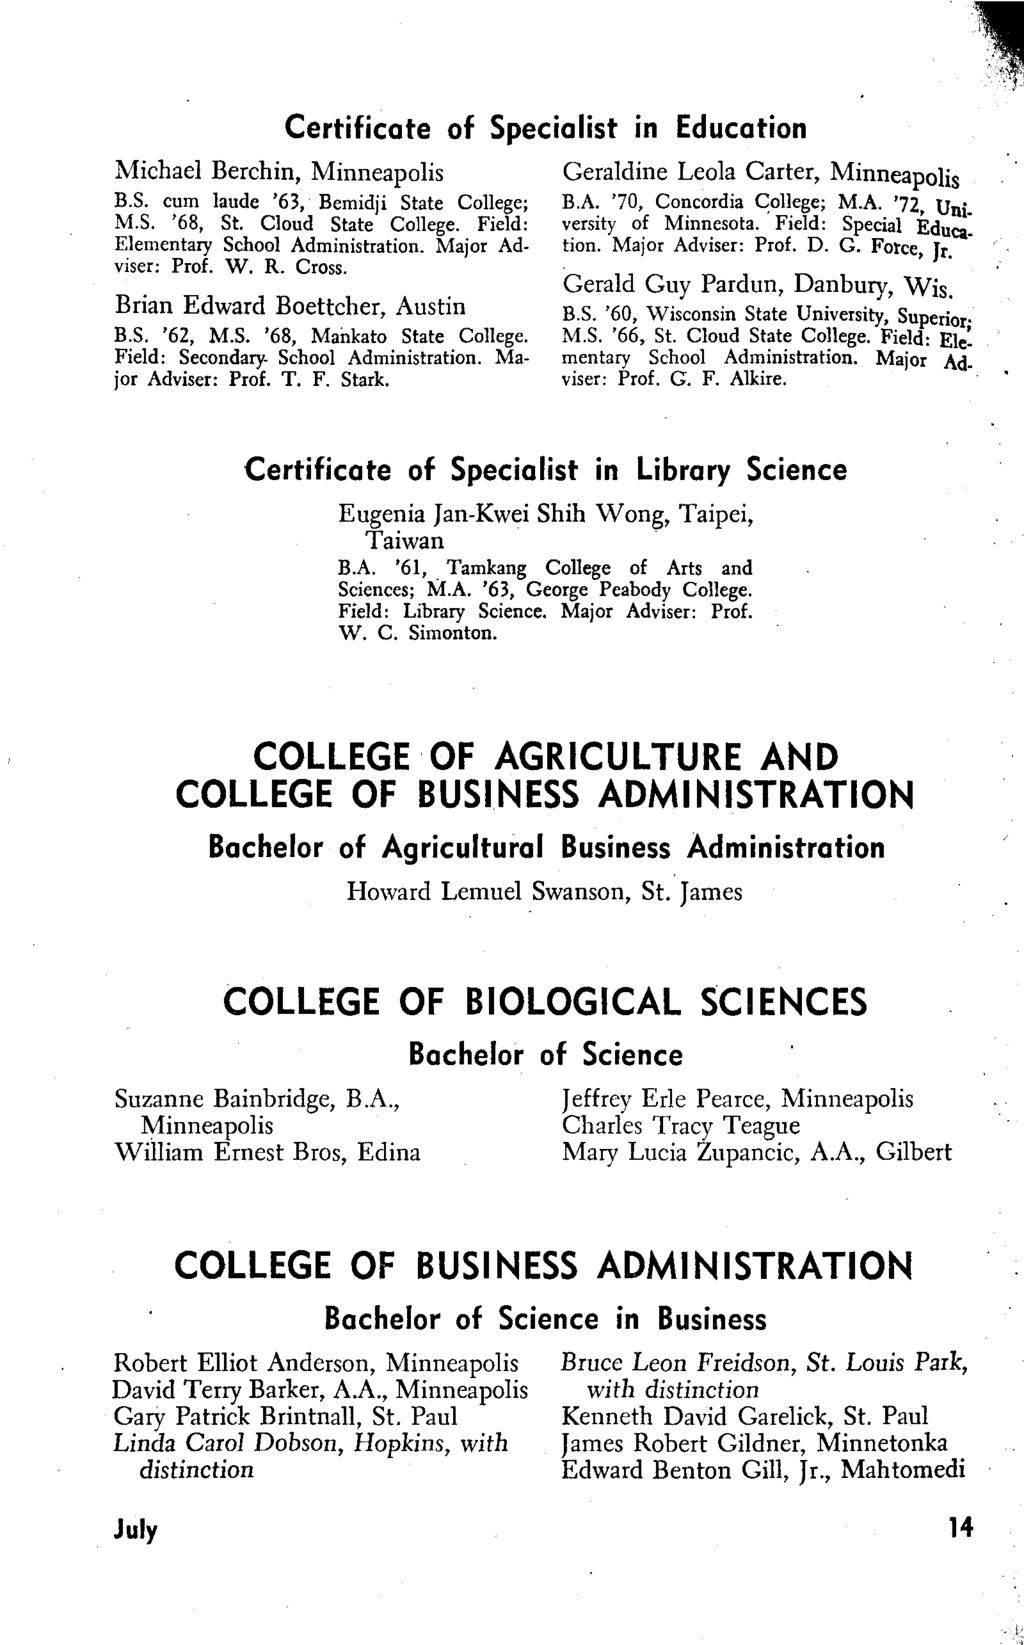 Certificate of Specialist in Education Michael Berchin, B.s. cum laude '63, Bemidji State College; M.S. '68, St. Cloud State College. Field: Elementary School Administration. Major Ad viser: Prof. W.